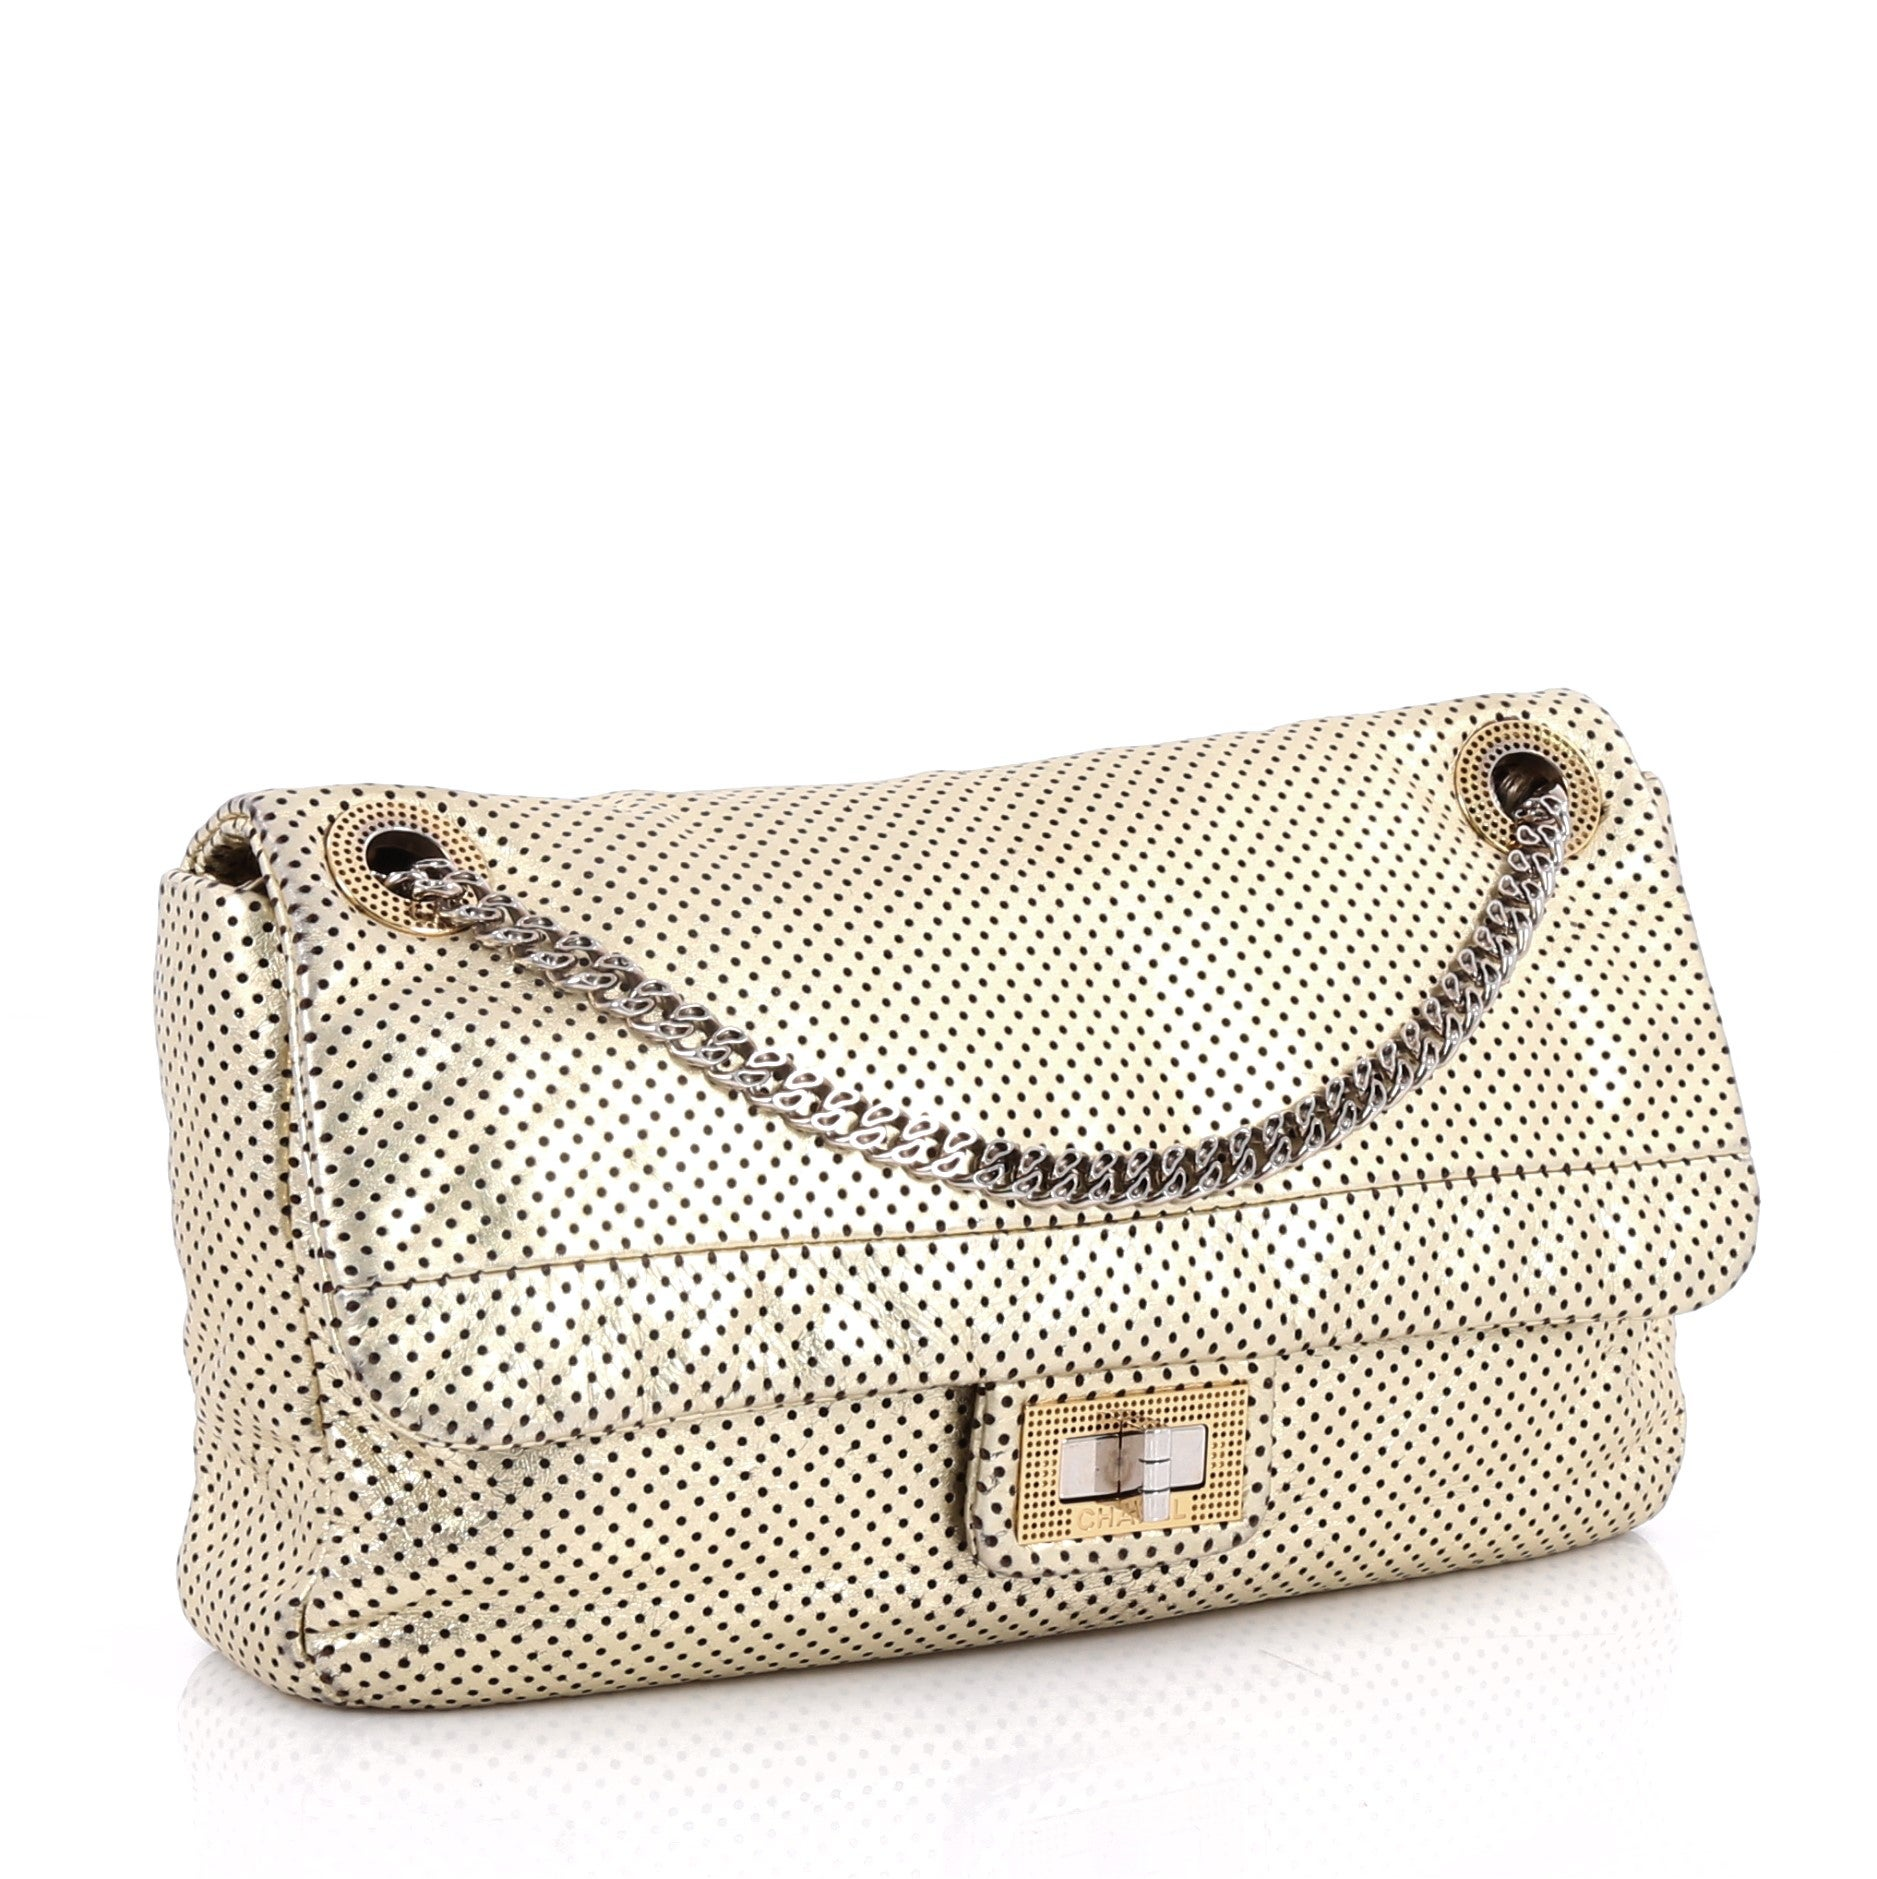 62cce82c57b974 Chanel Drill Flap Bag Perforated Leather Medium at 1stdibs